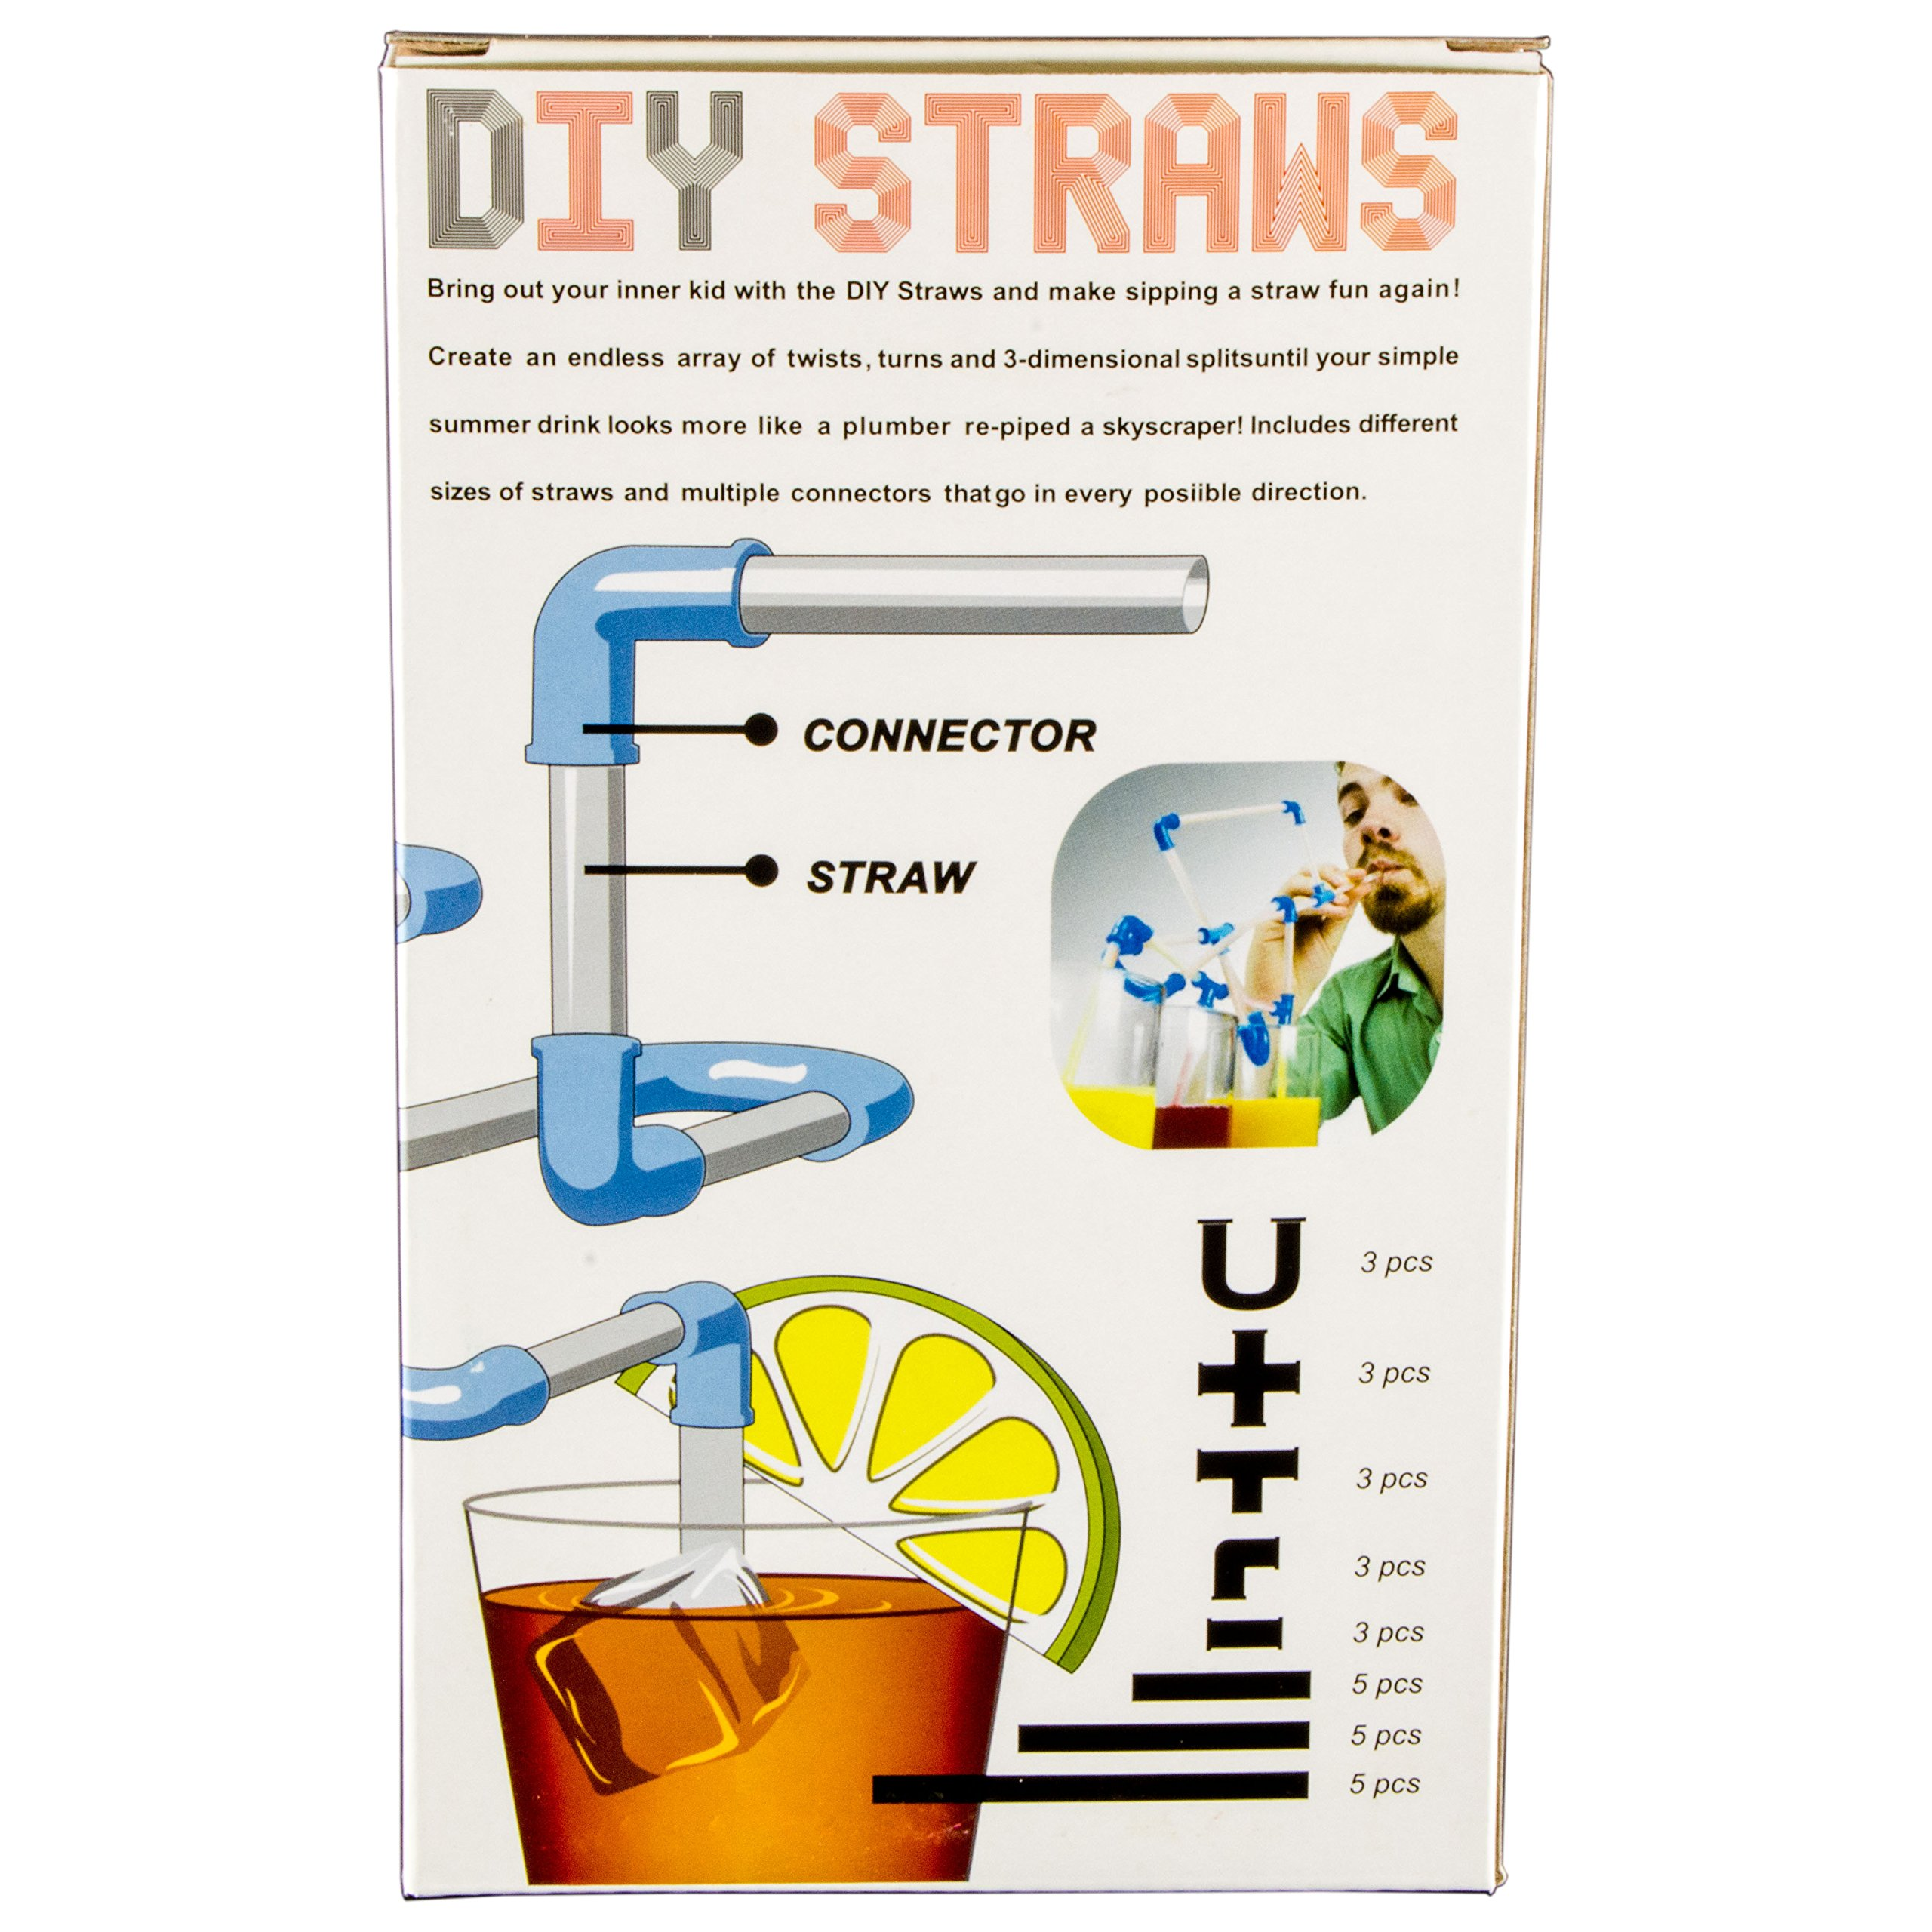 Electronix Express DIY Straws - Construct Your Own Crazy Drinking Straw - 30 Piece Kit by Electronix Express